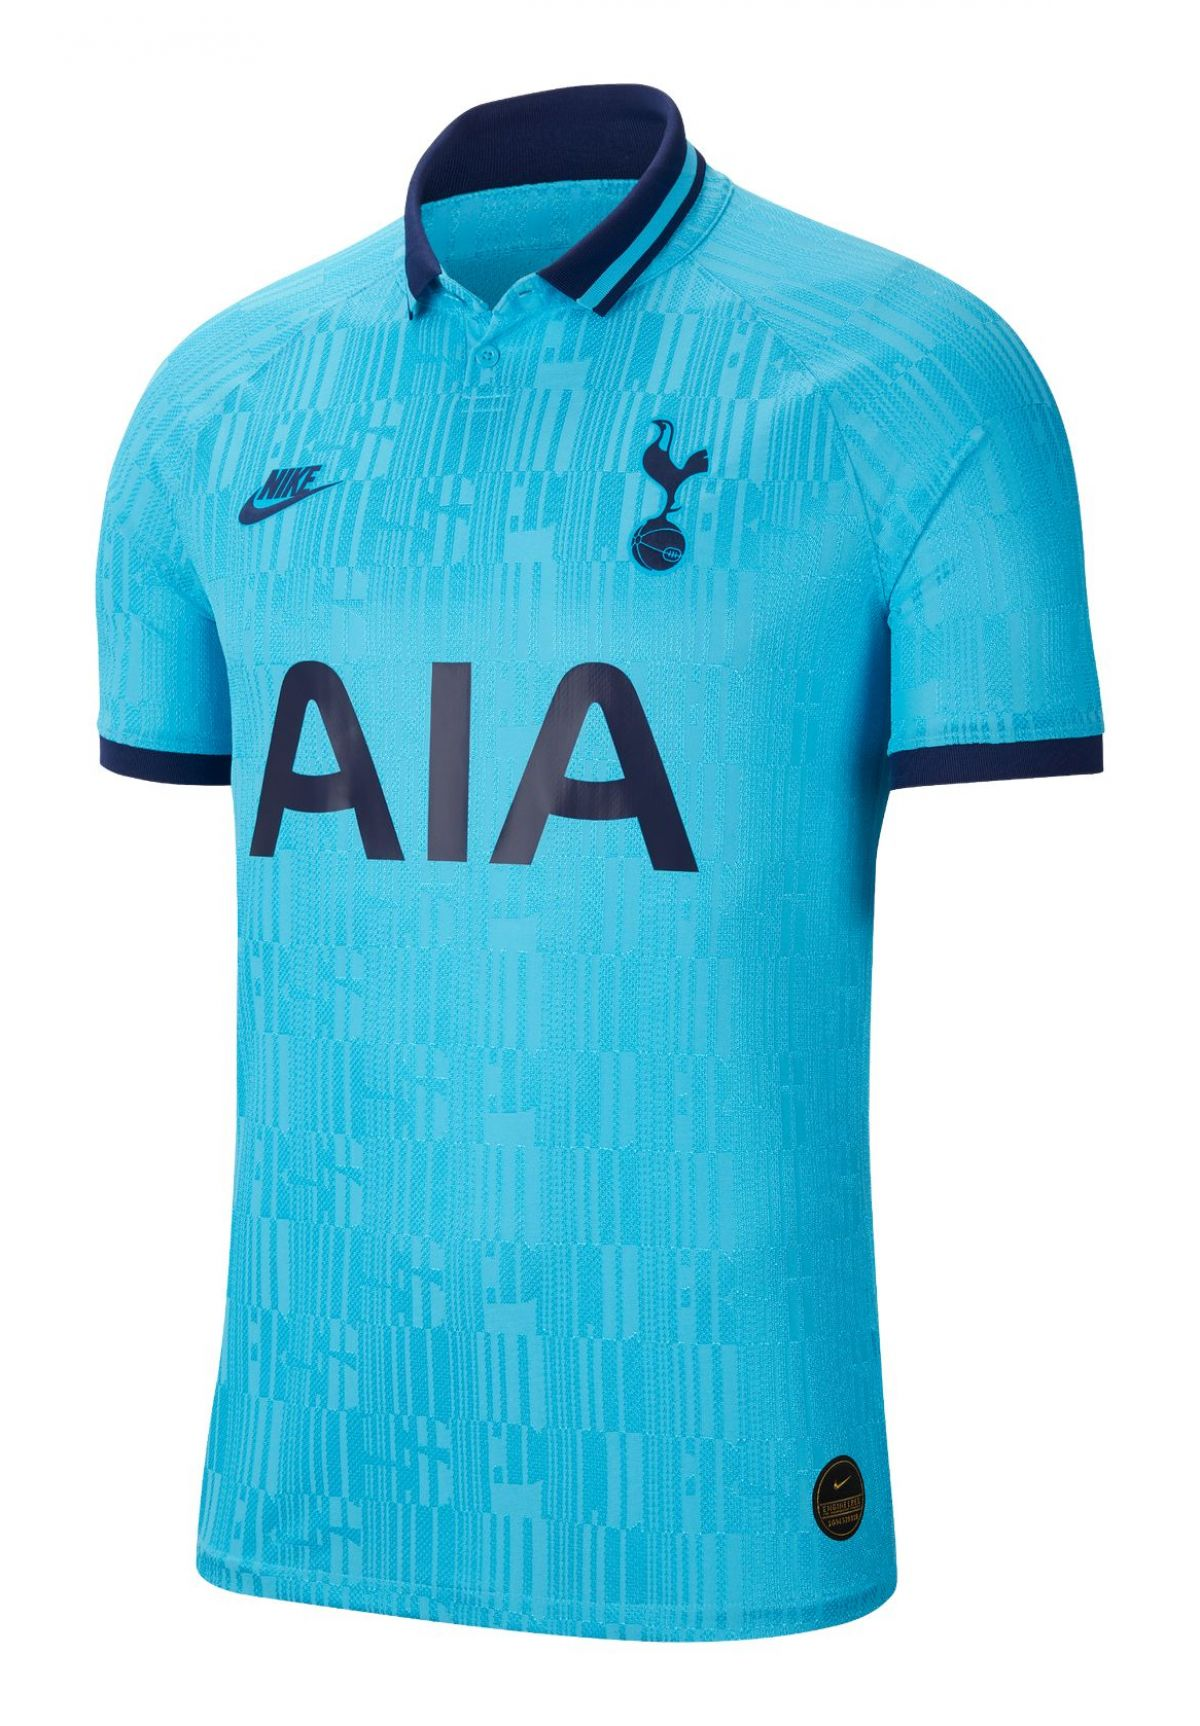 Tottenham Hotspur 2019 20 Third Kit